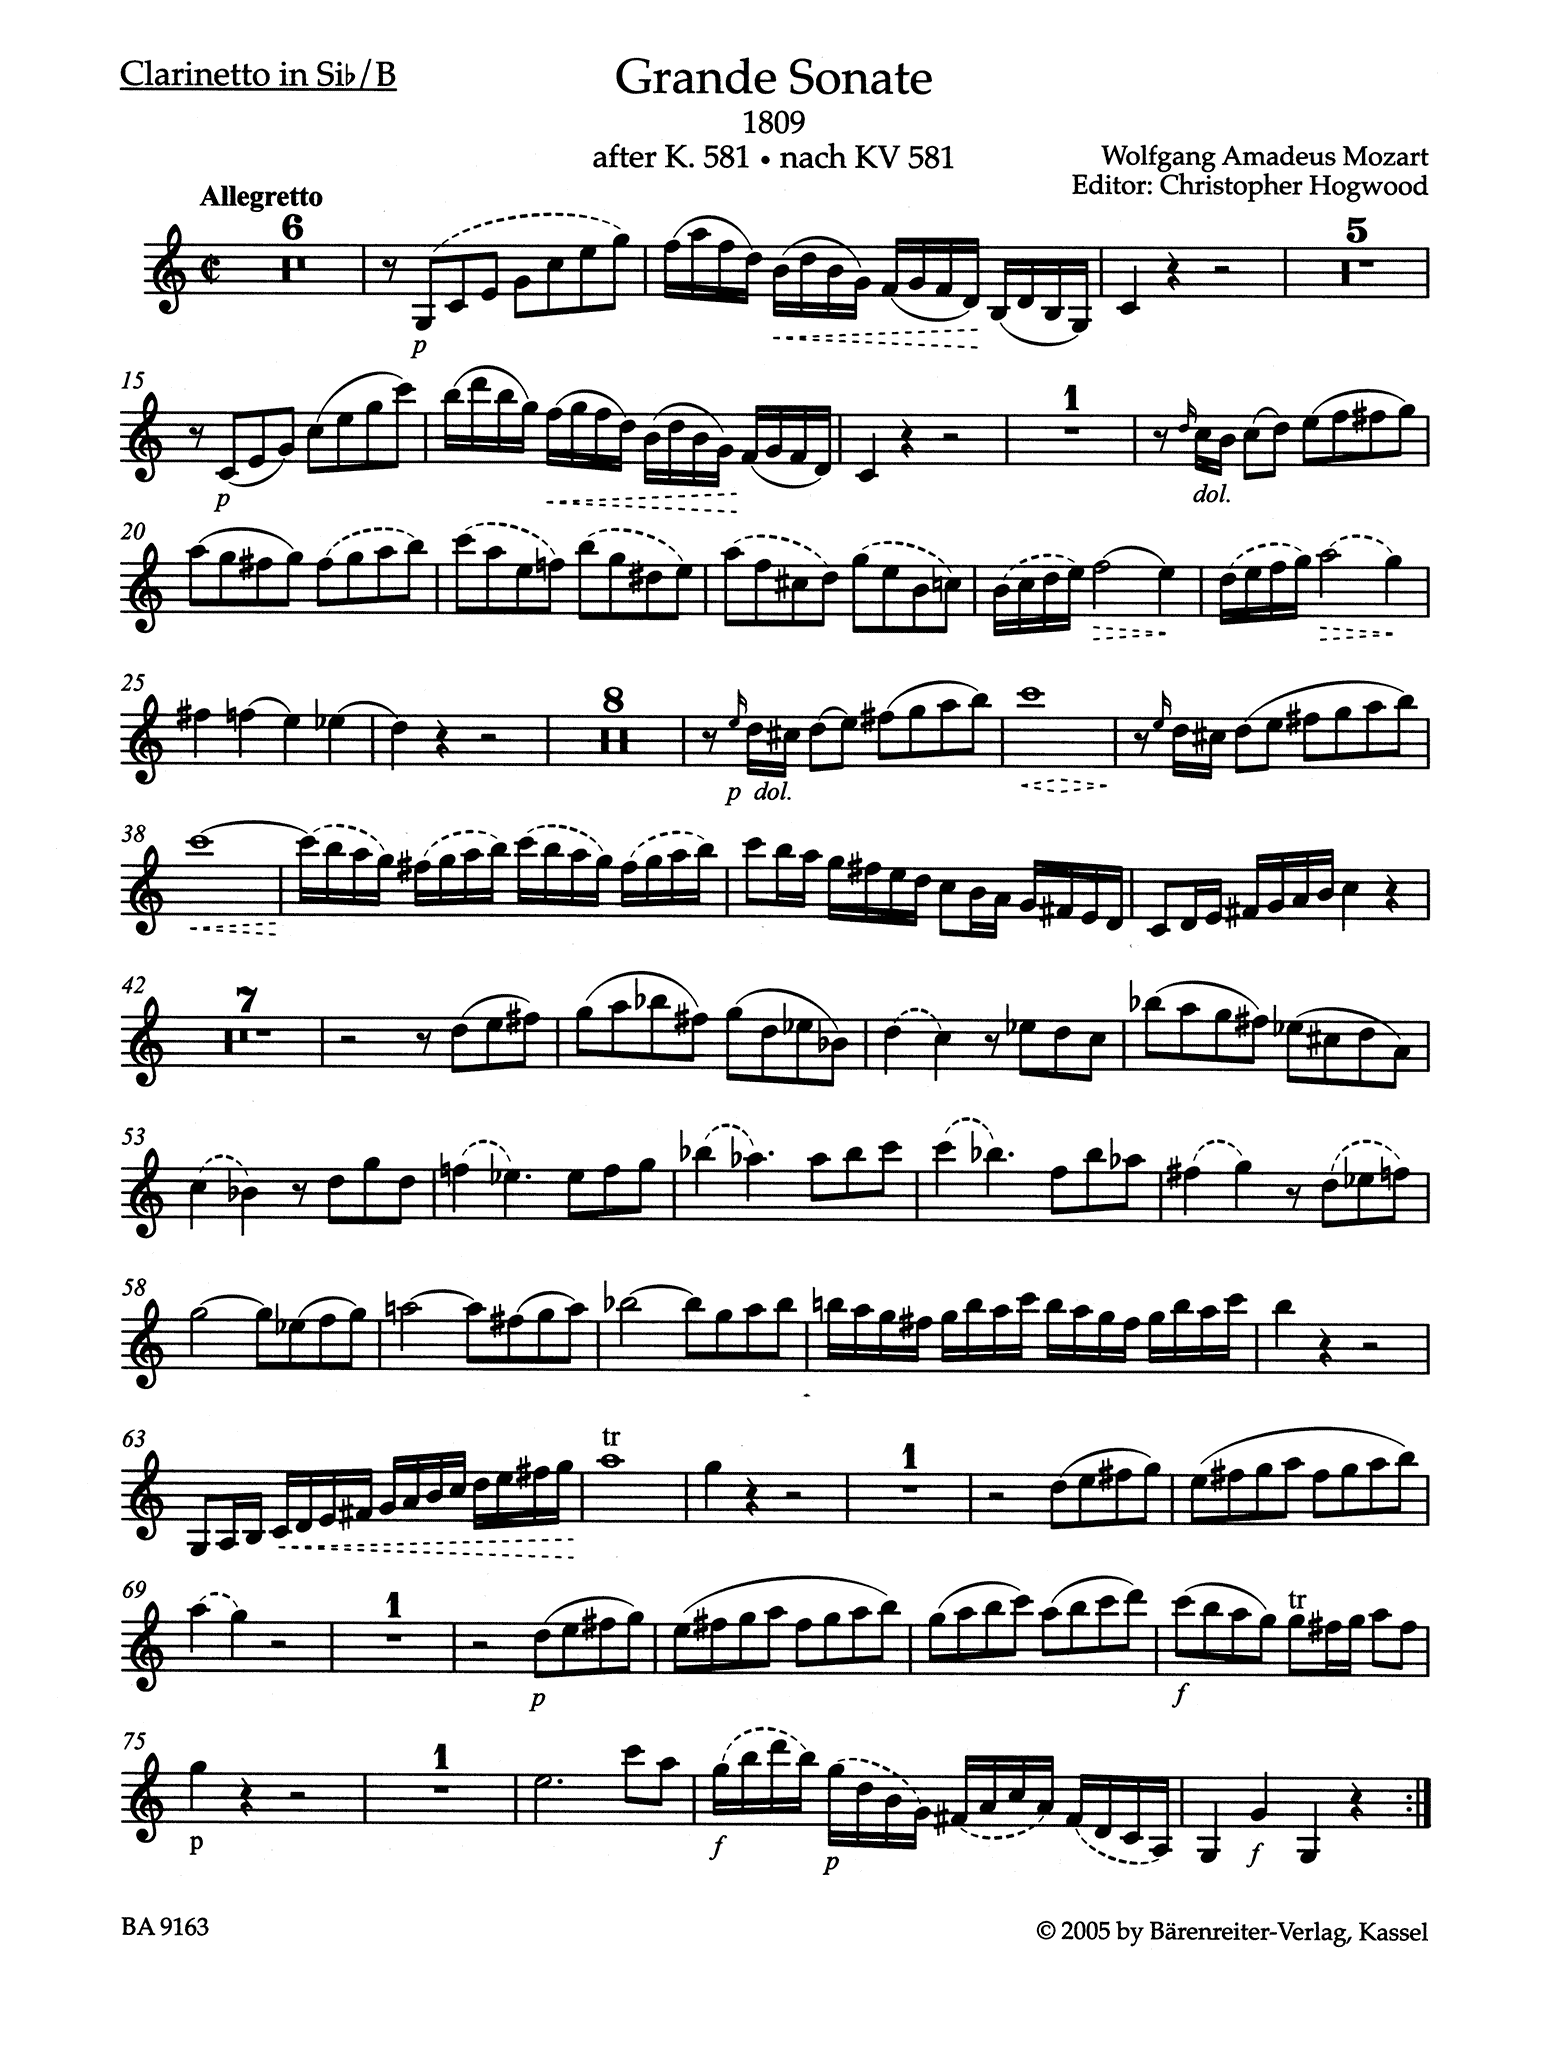 Grande Sonate after the Clarinet Quintet, K. 581 Clarinet part